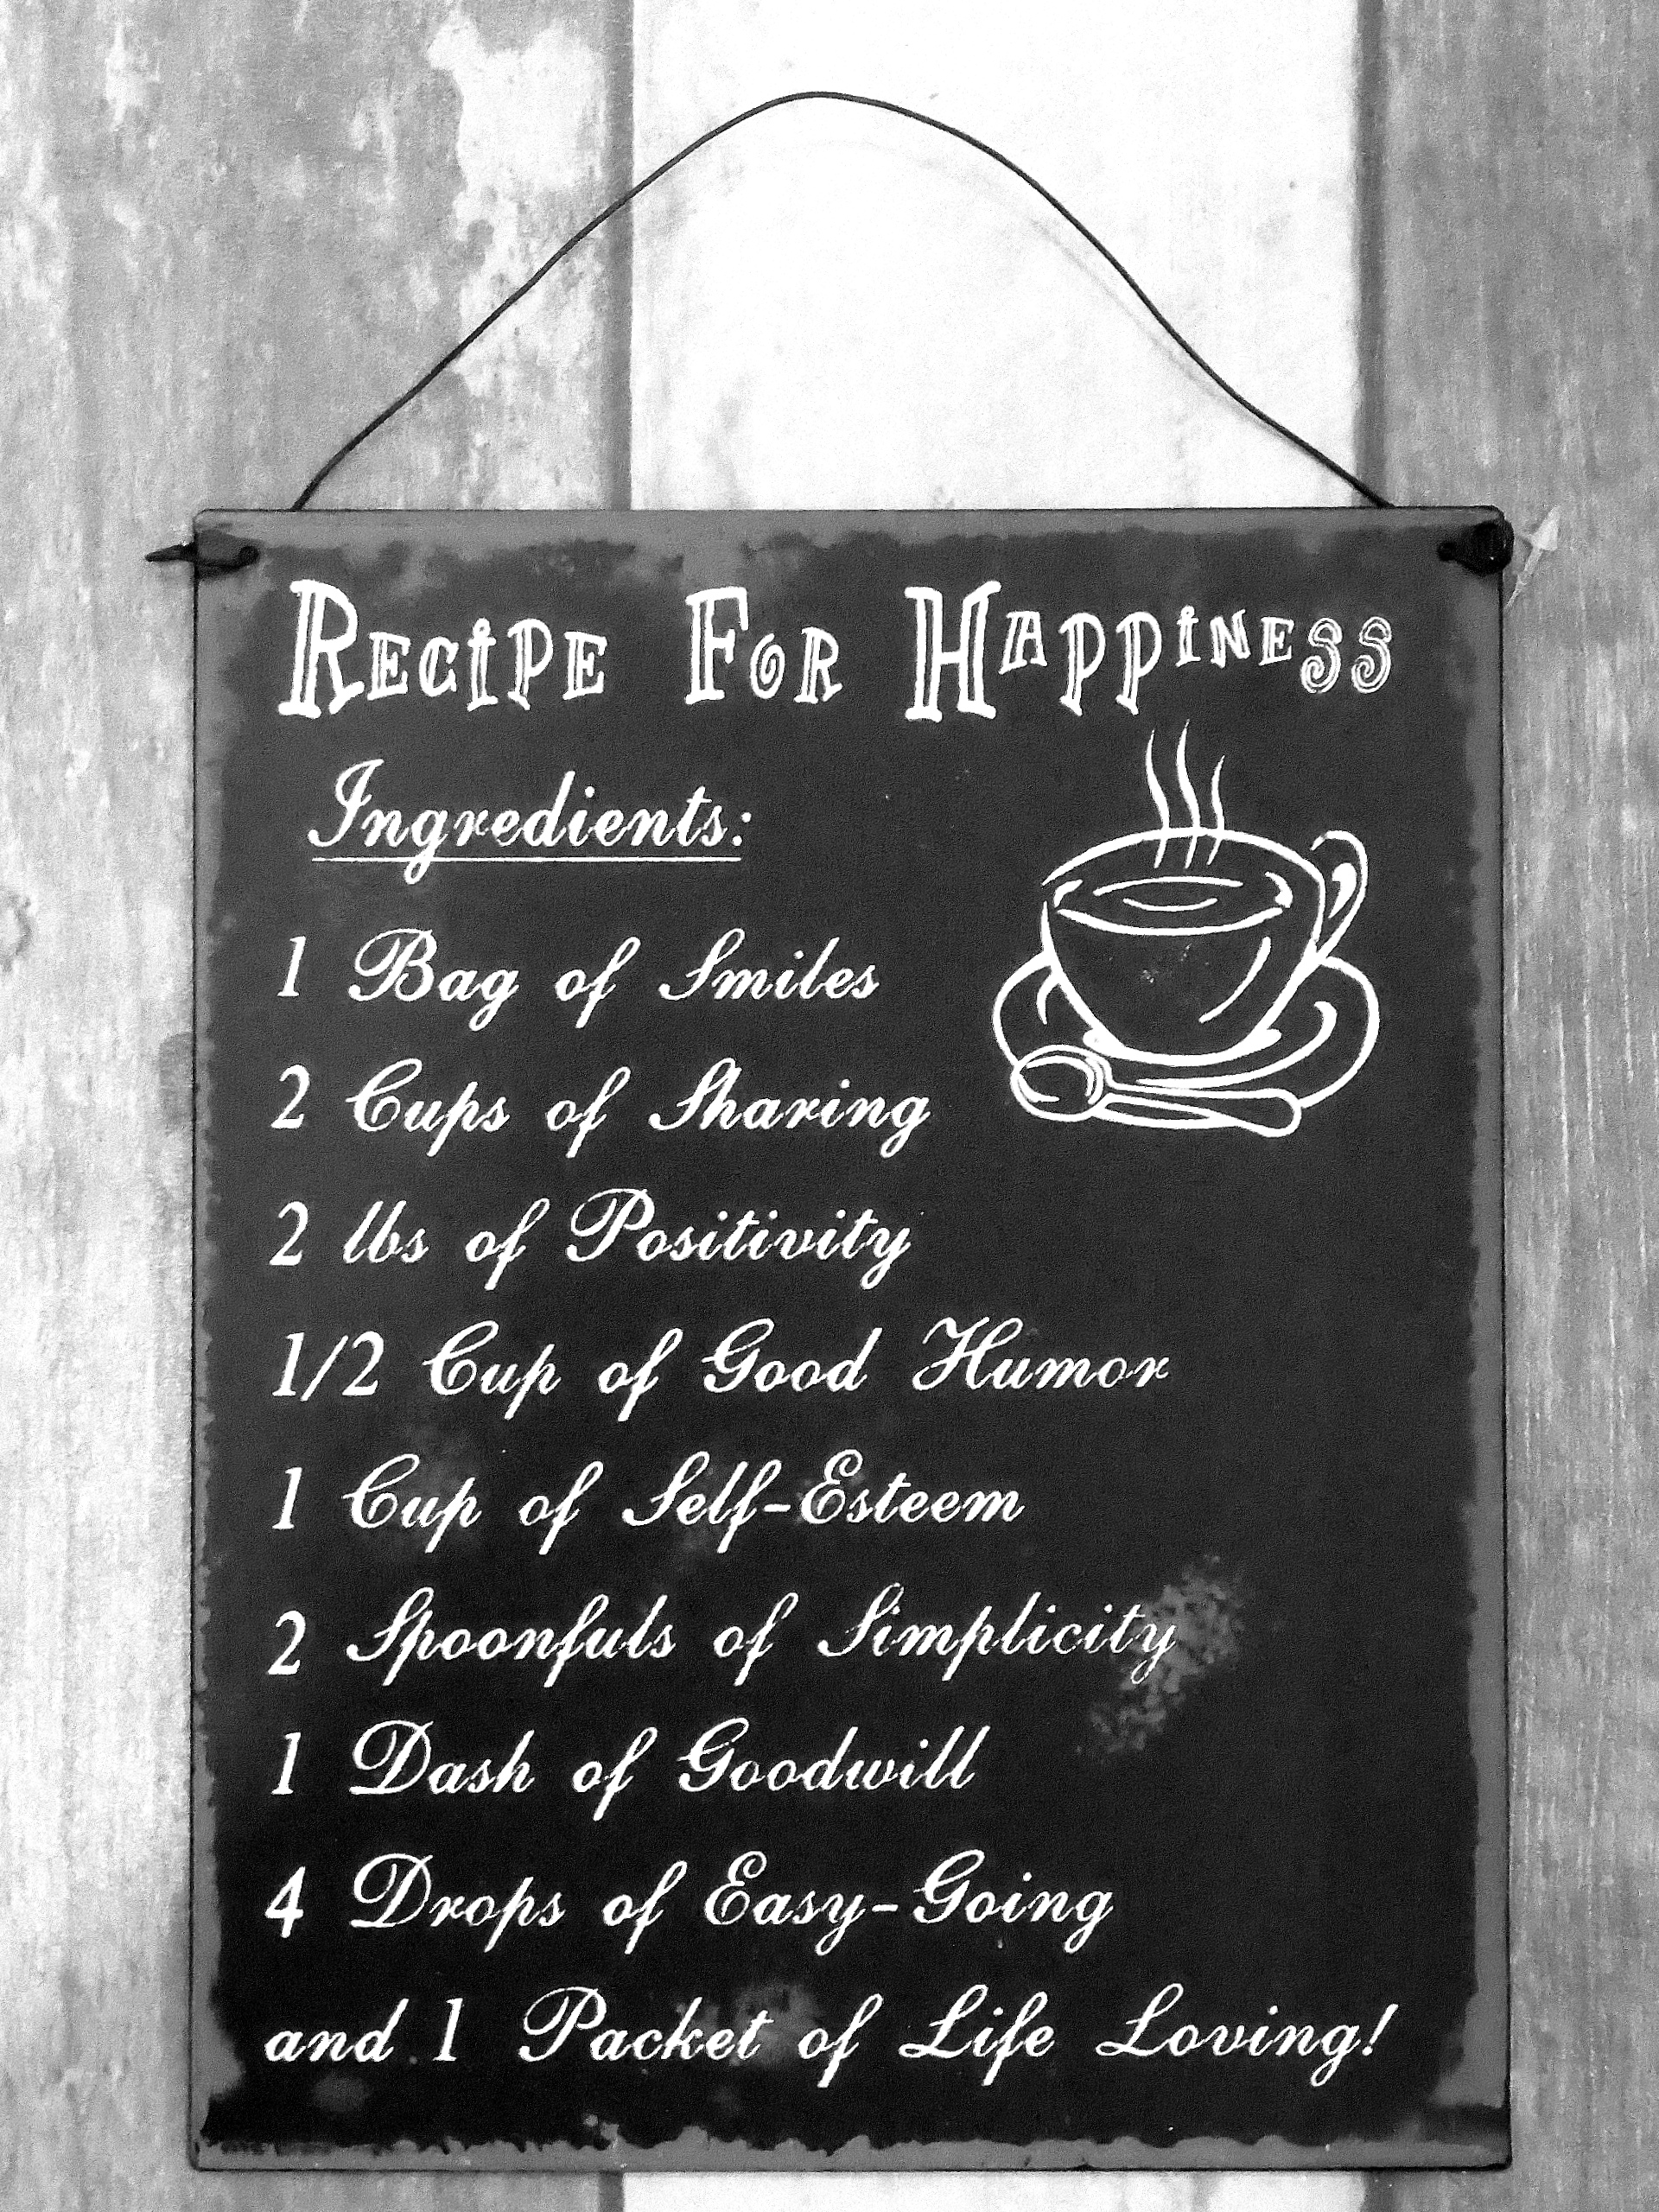 Cedule RECIPE FOR HAPPINESS